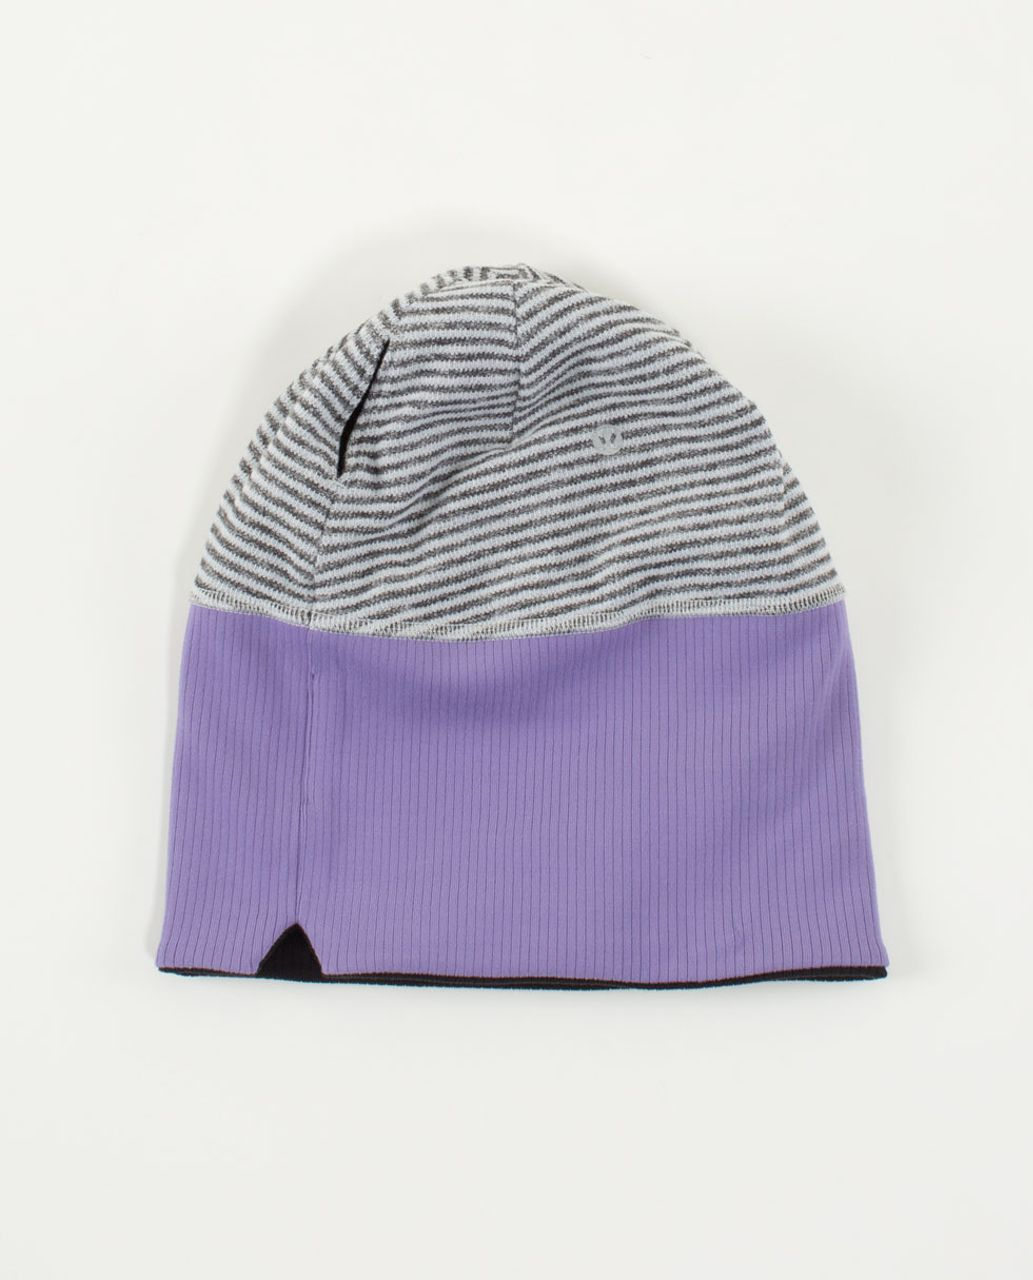 Lululemon Run With Me Toque - Mini Check Pique Heathered Black White